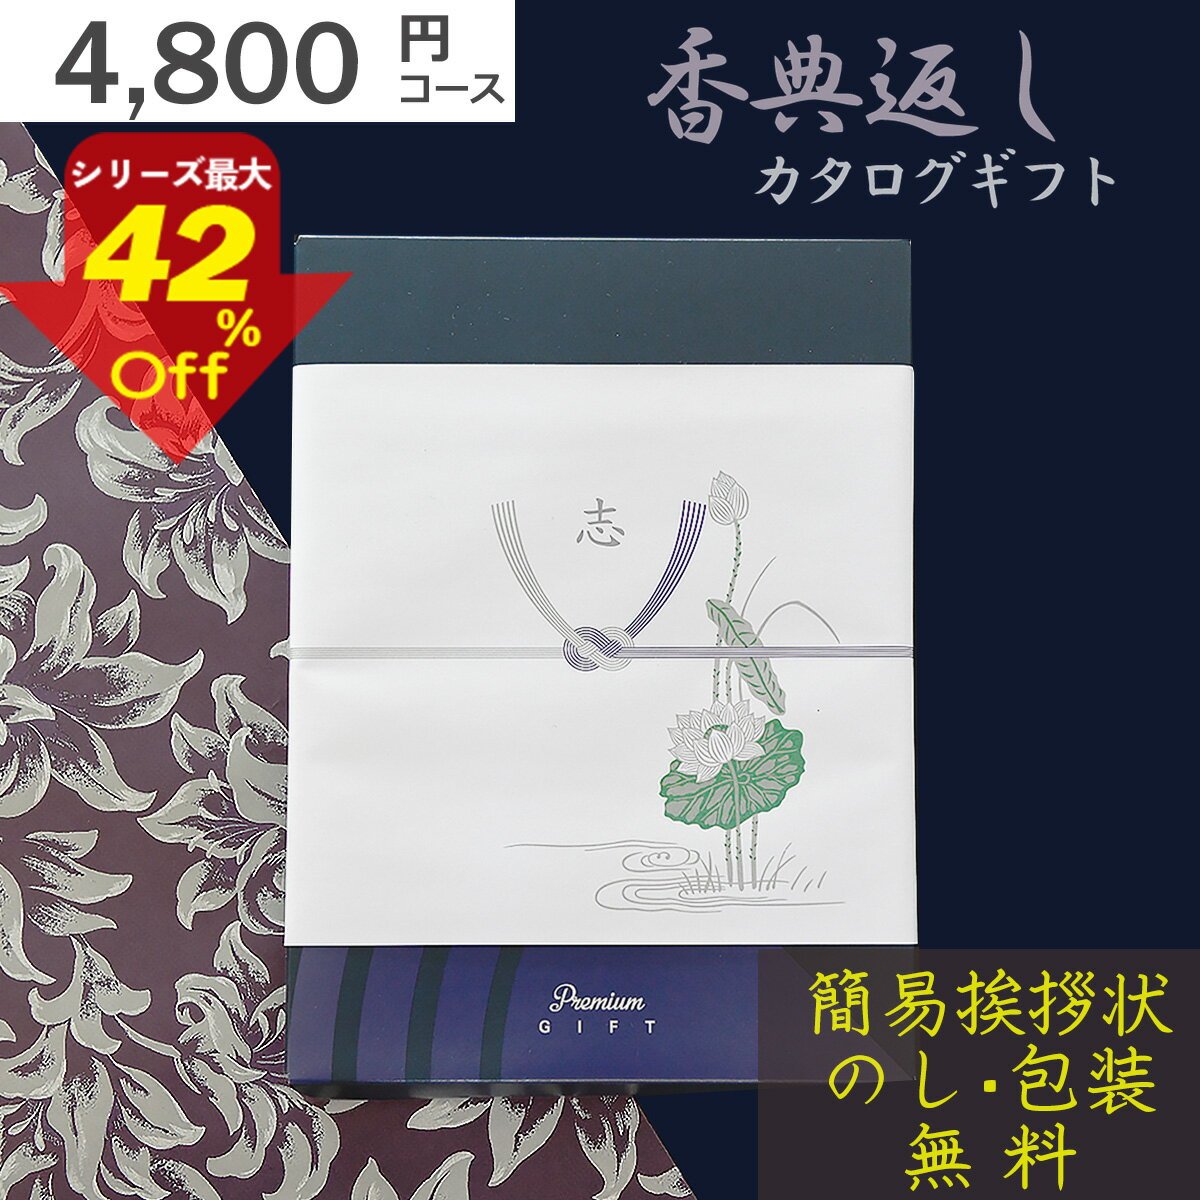 30%OFF! 香典返し カタログギフト [弔事...の商品画像